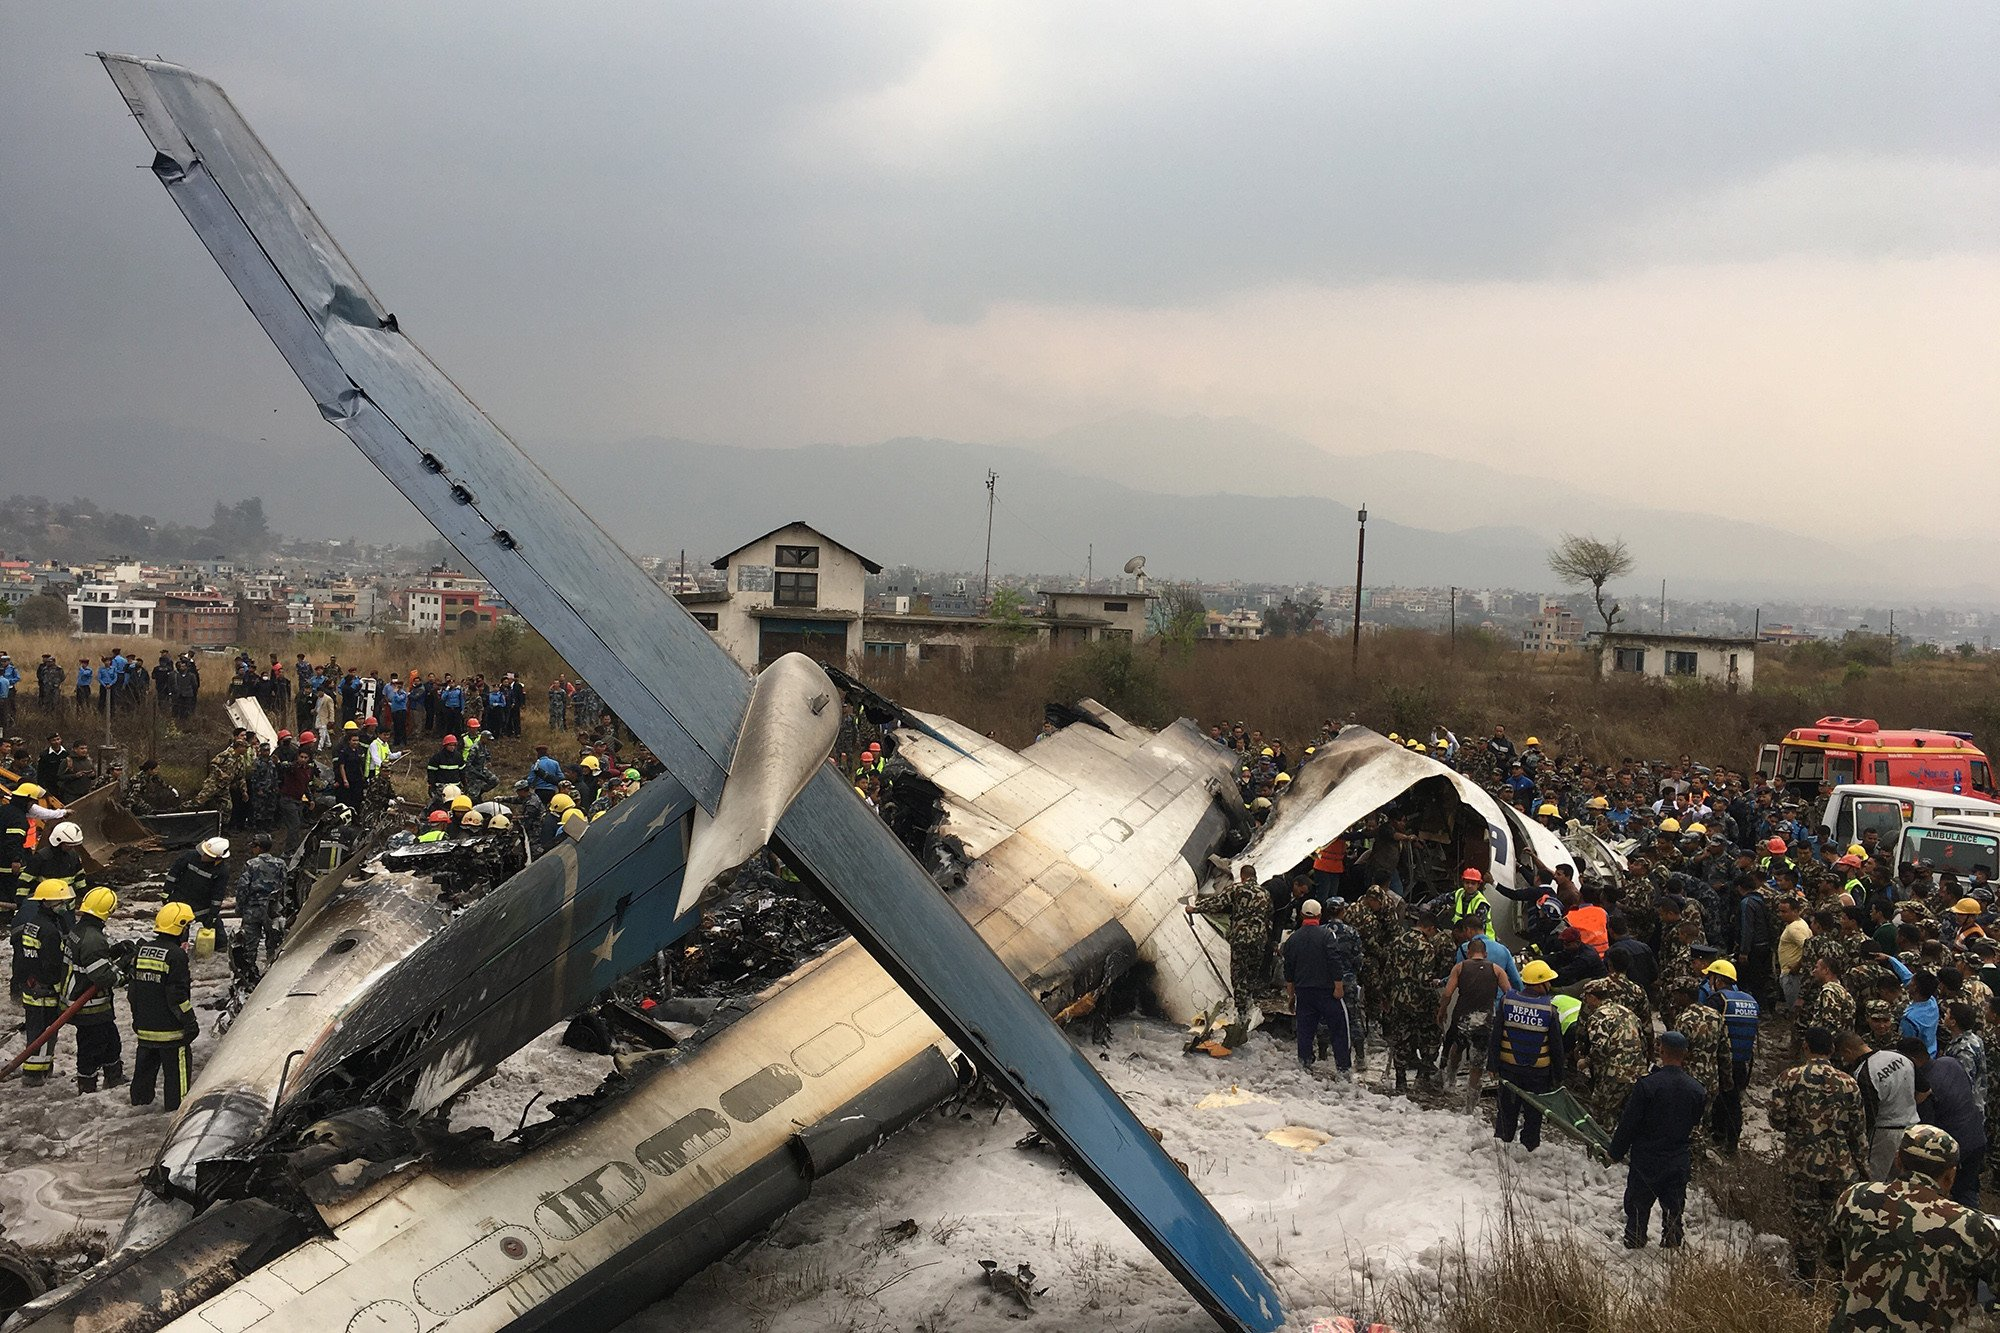 Commercial plane crashes, bursts into flames at Nepal airport